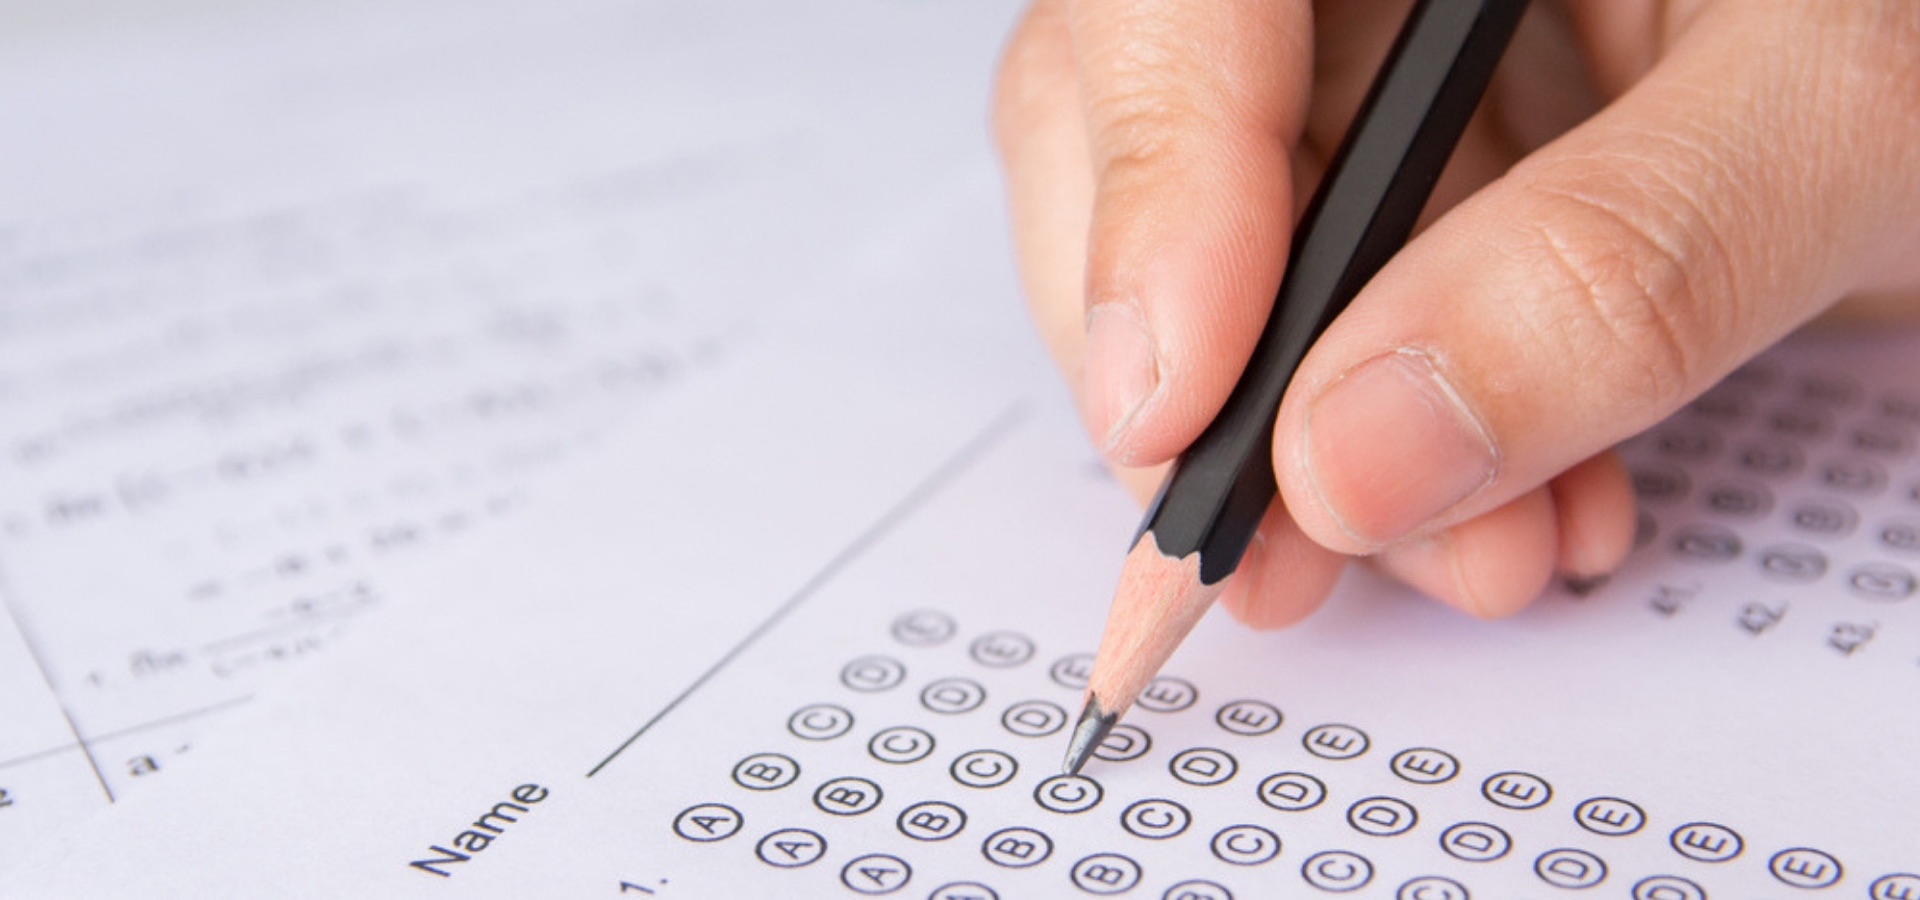 Matric Learners Top Tips For Exam Success